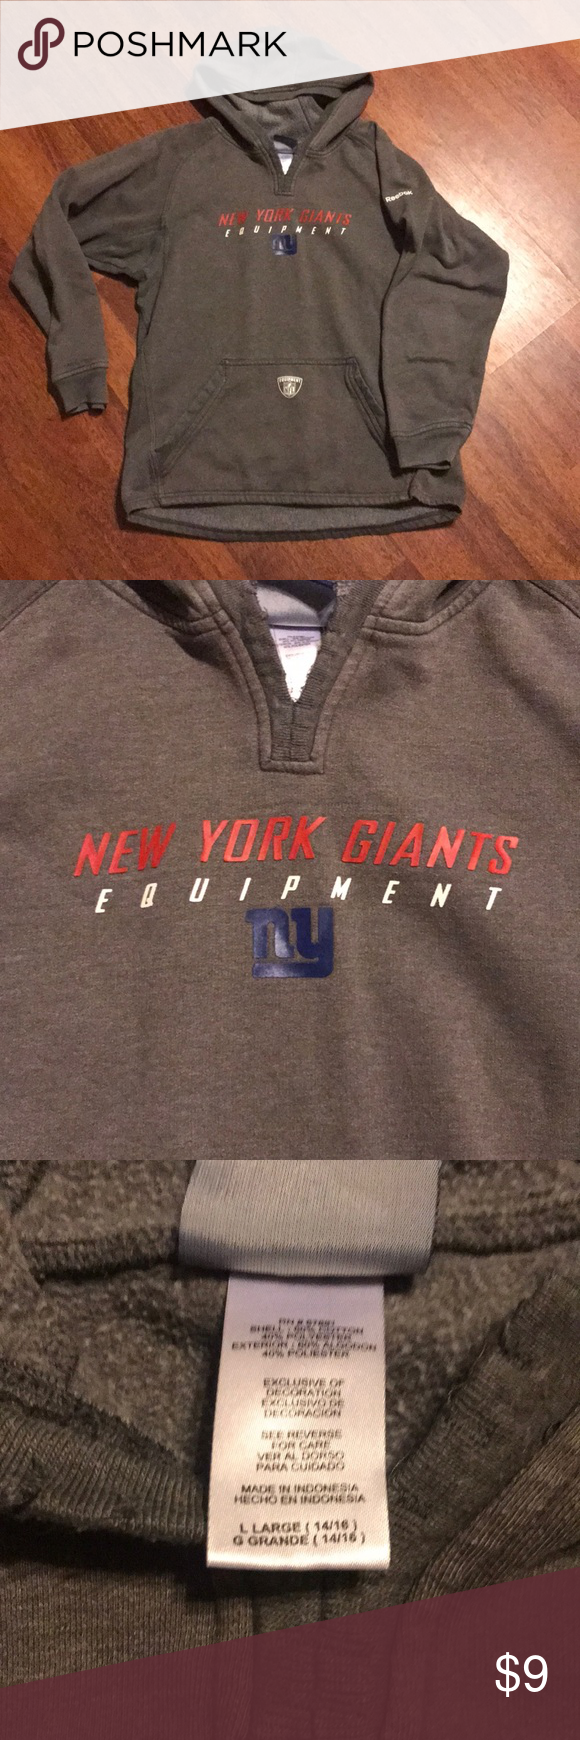 new product 10a83 b8330 NY Giants Boys Hoodie Reebok NFL Equipment hoodie NY Giants ...